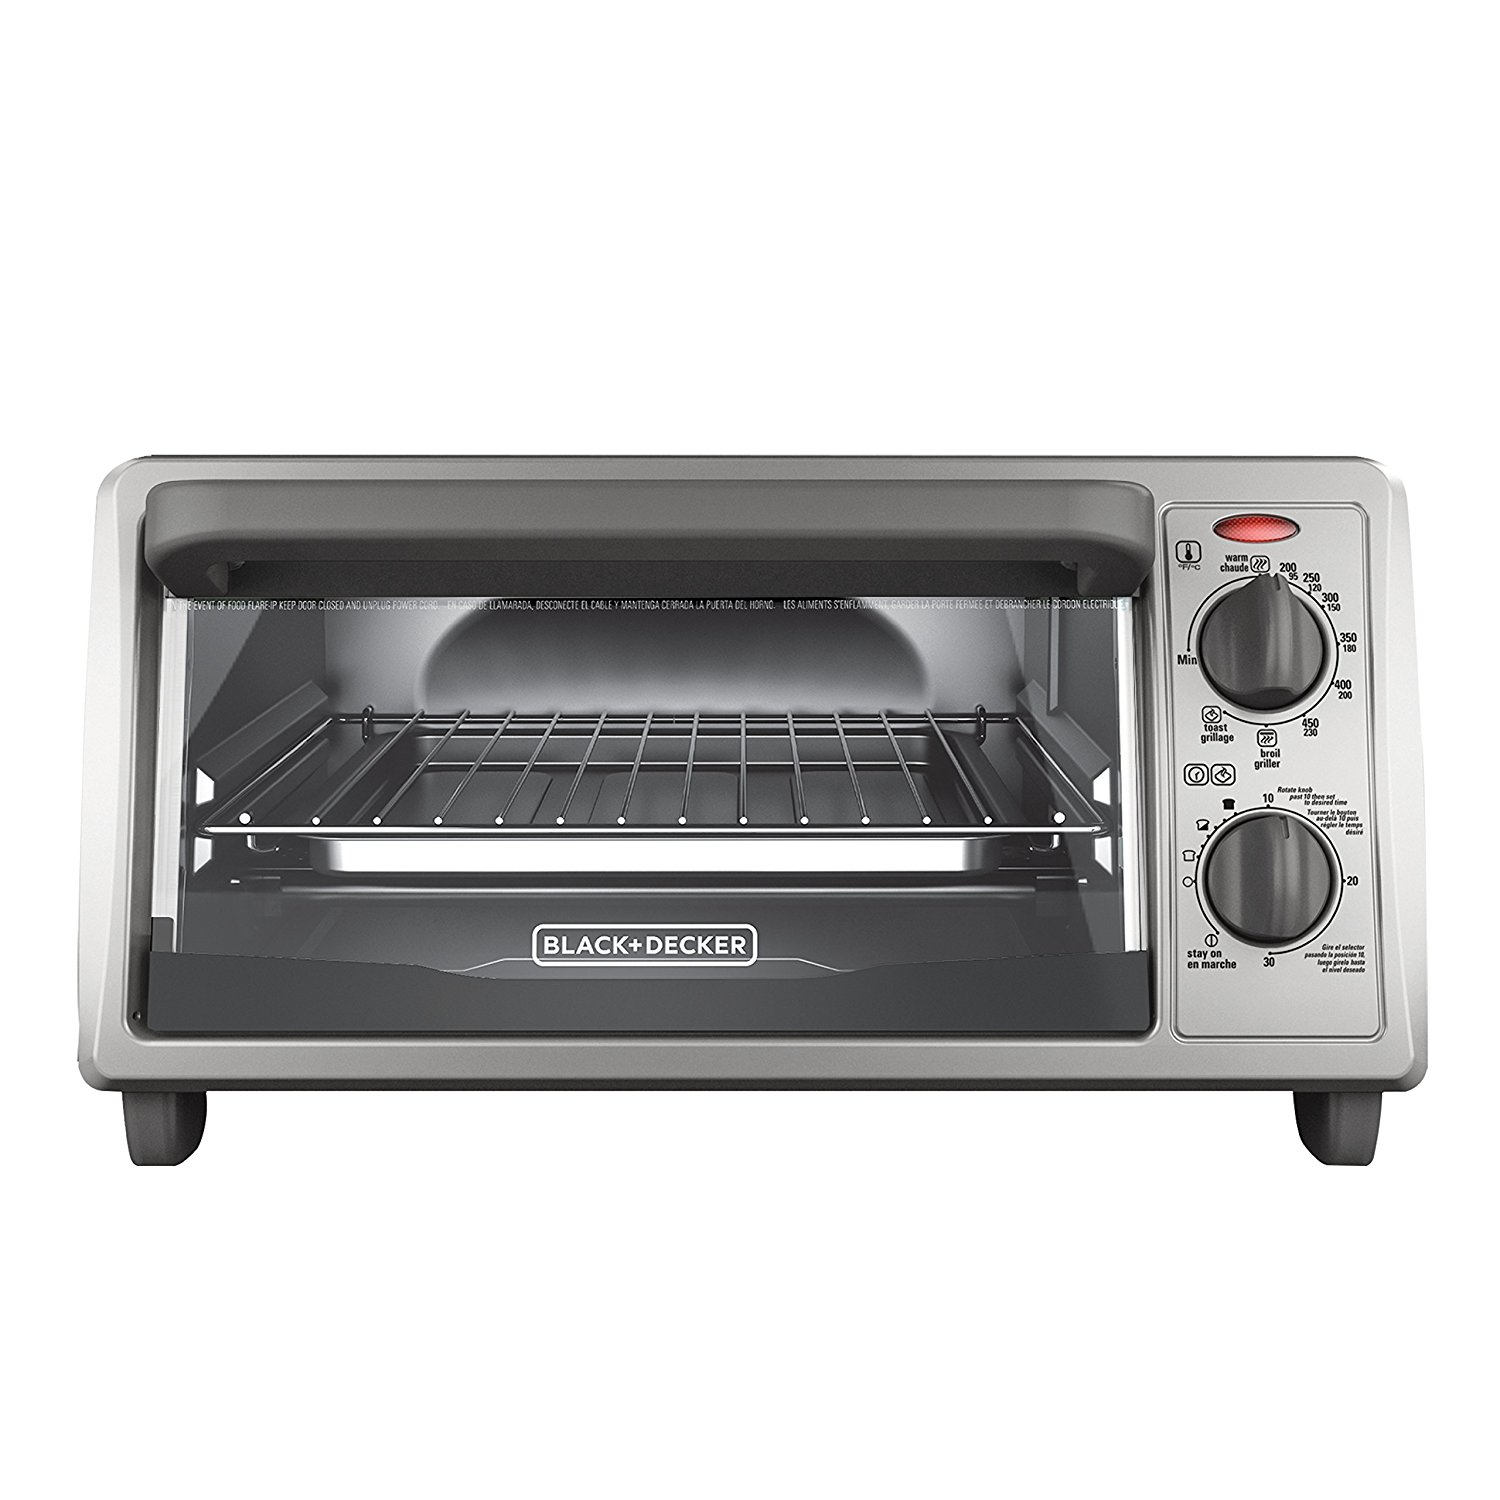 Top 10 Best Toaster Ovens 2019 - Best Toaster Reviews ...